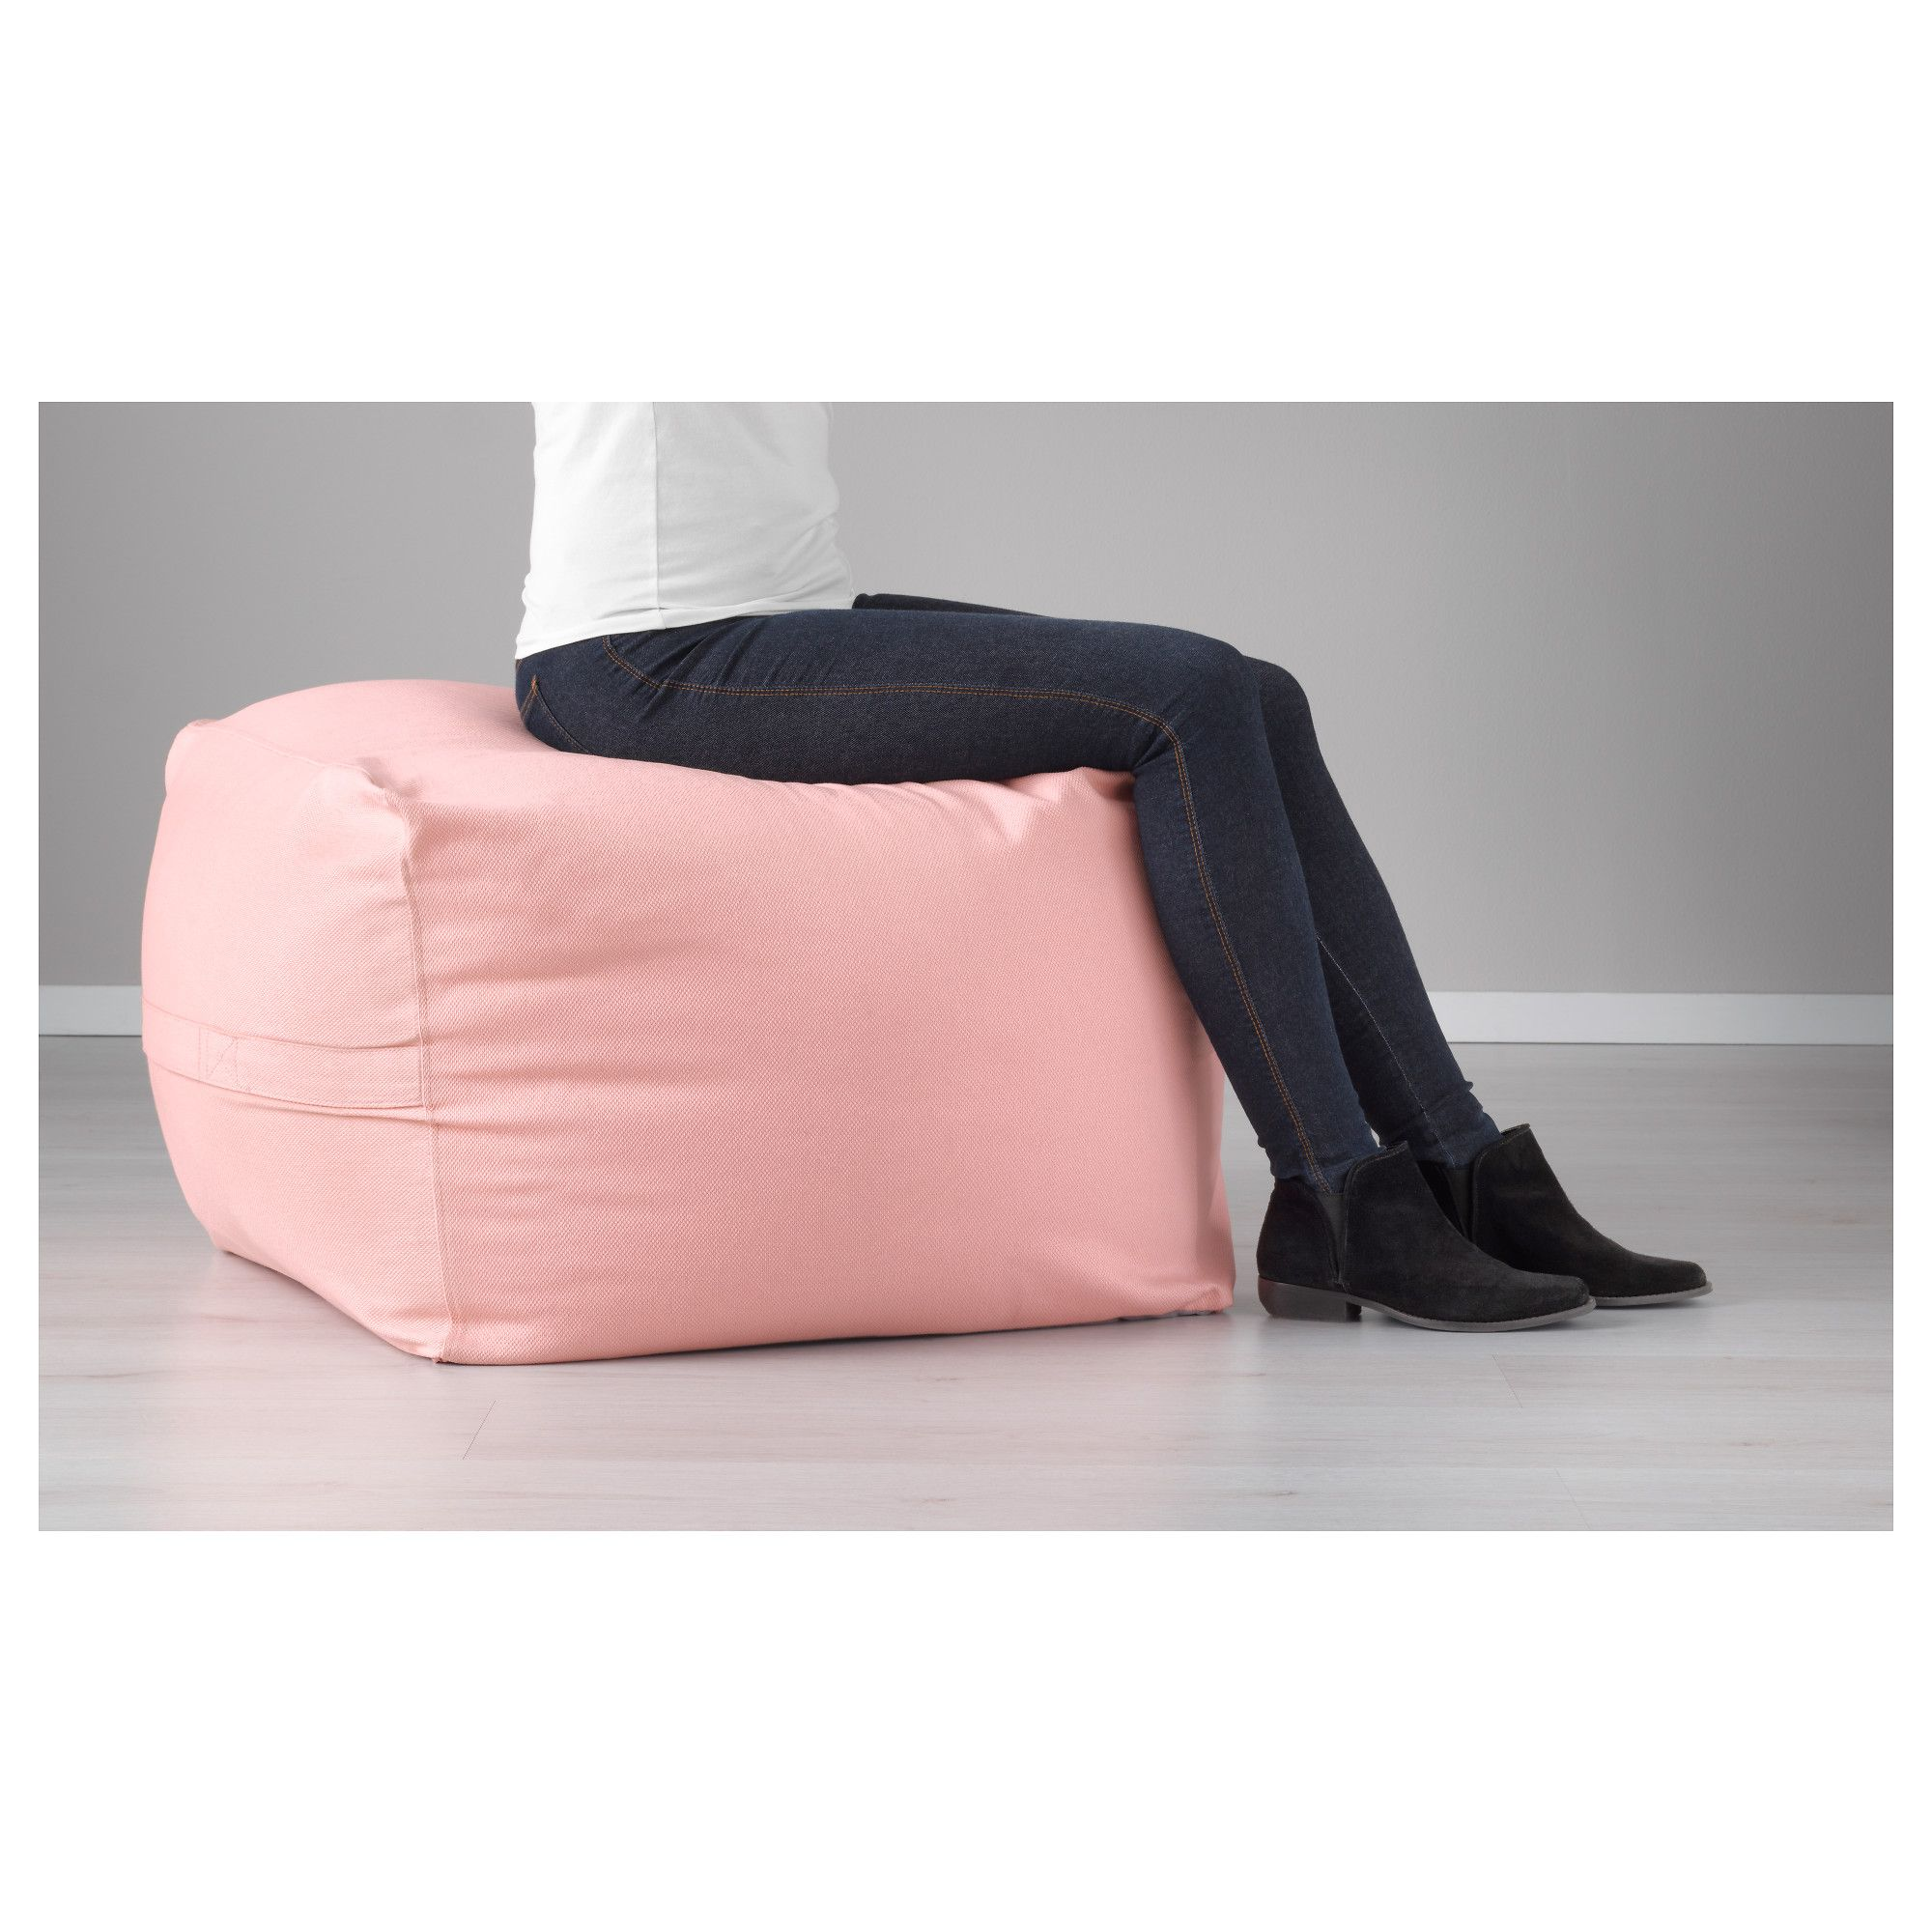 Ikea Jordbro Beanbag The Cover Is Easy To Keep Clean As It Removable And Can Be Machine Washed